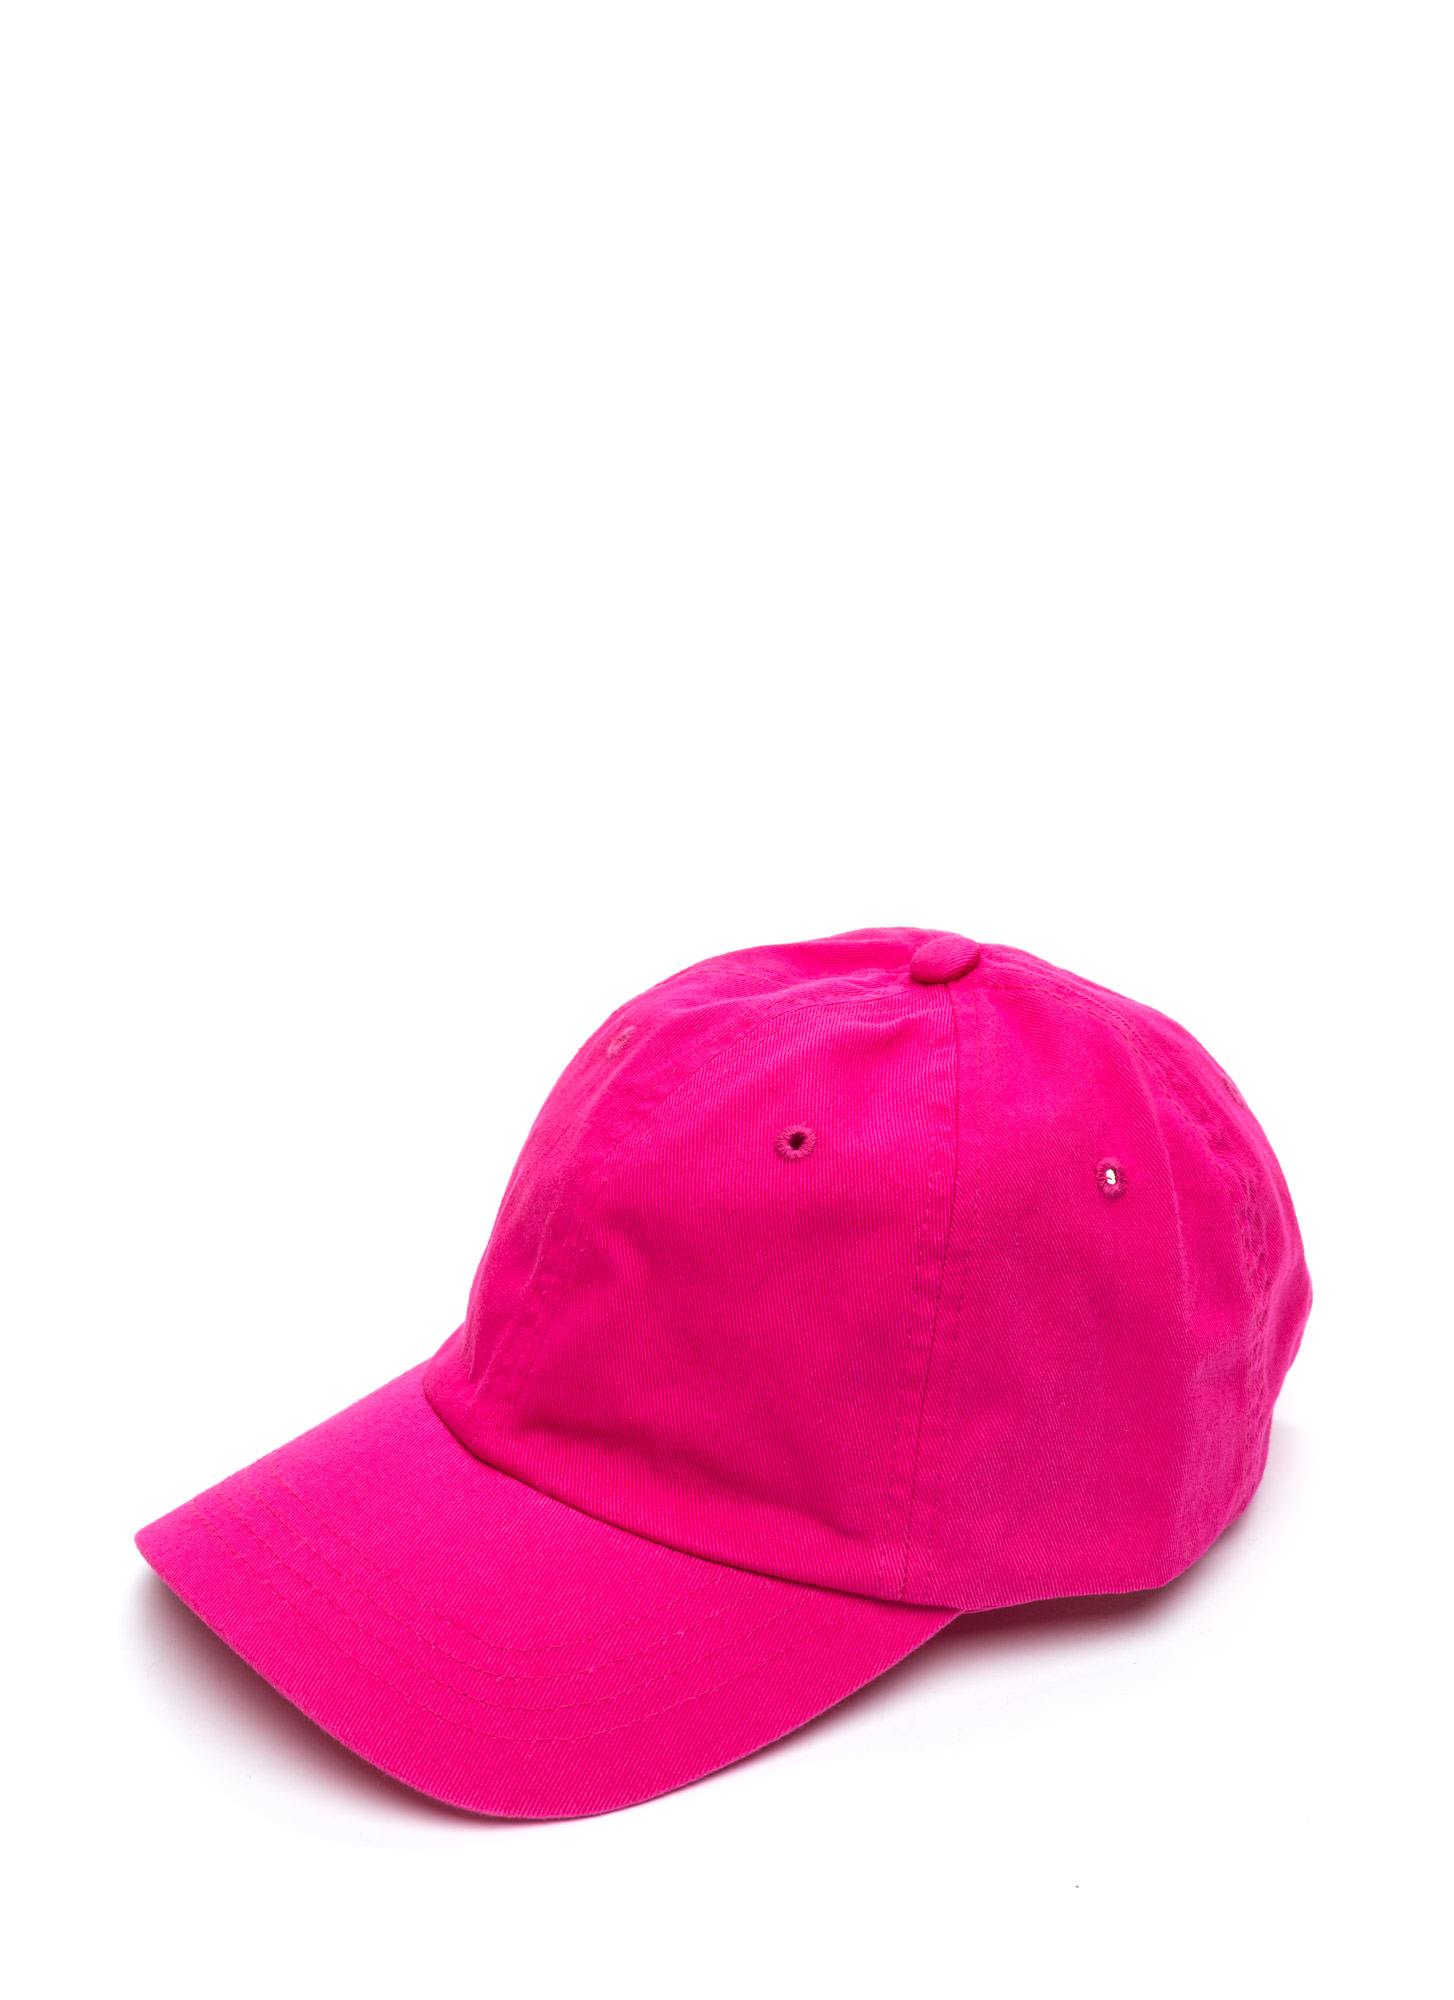 Not A Player Baseball Cap HOTPINK